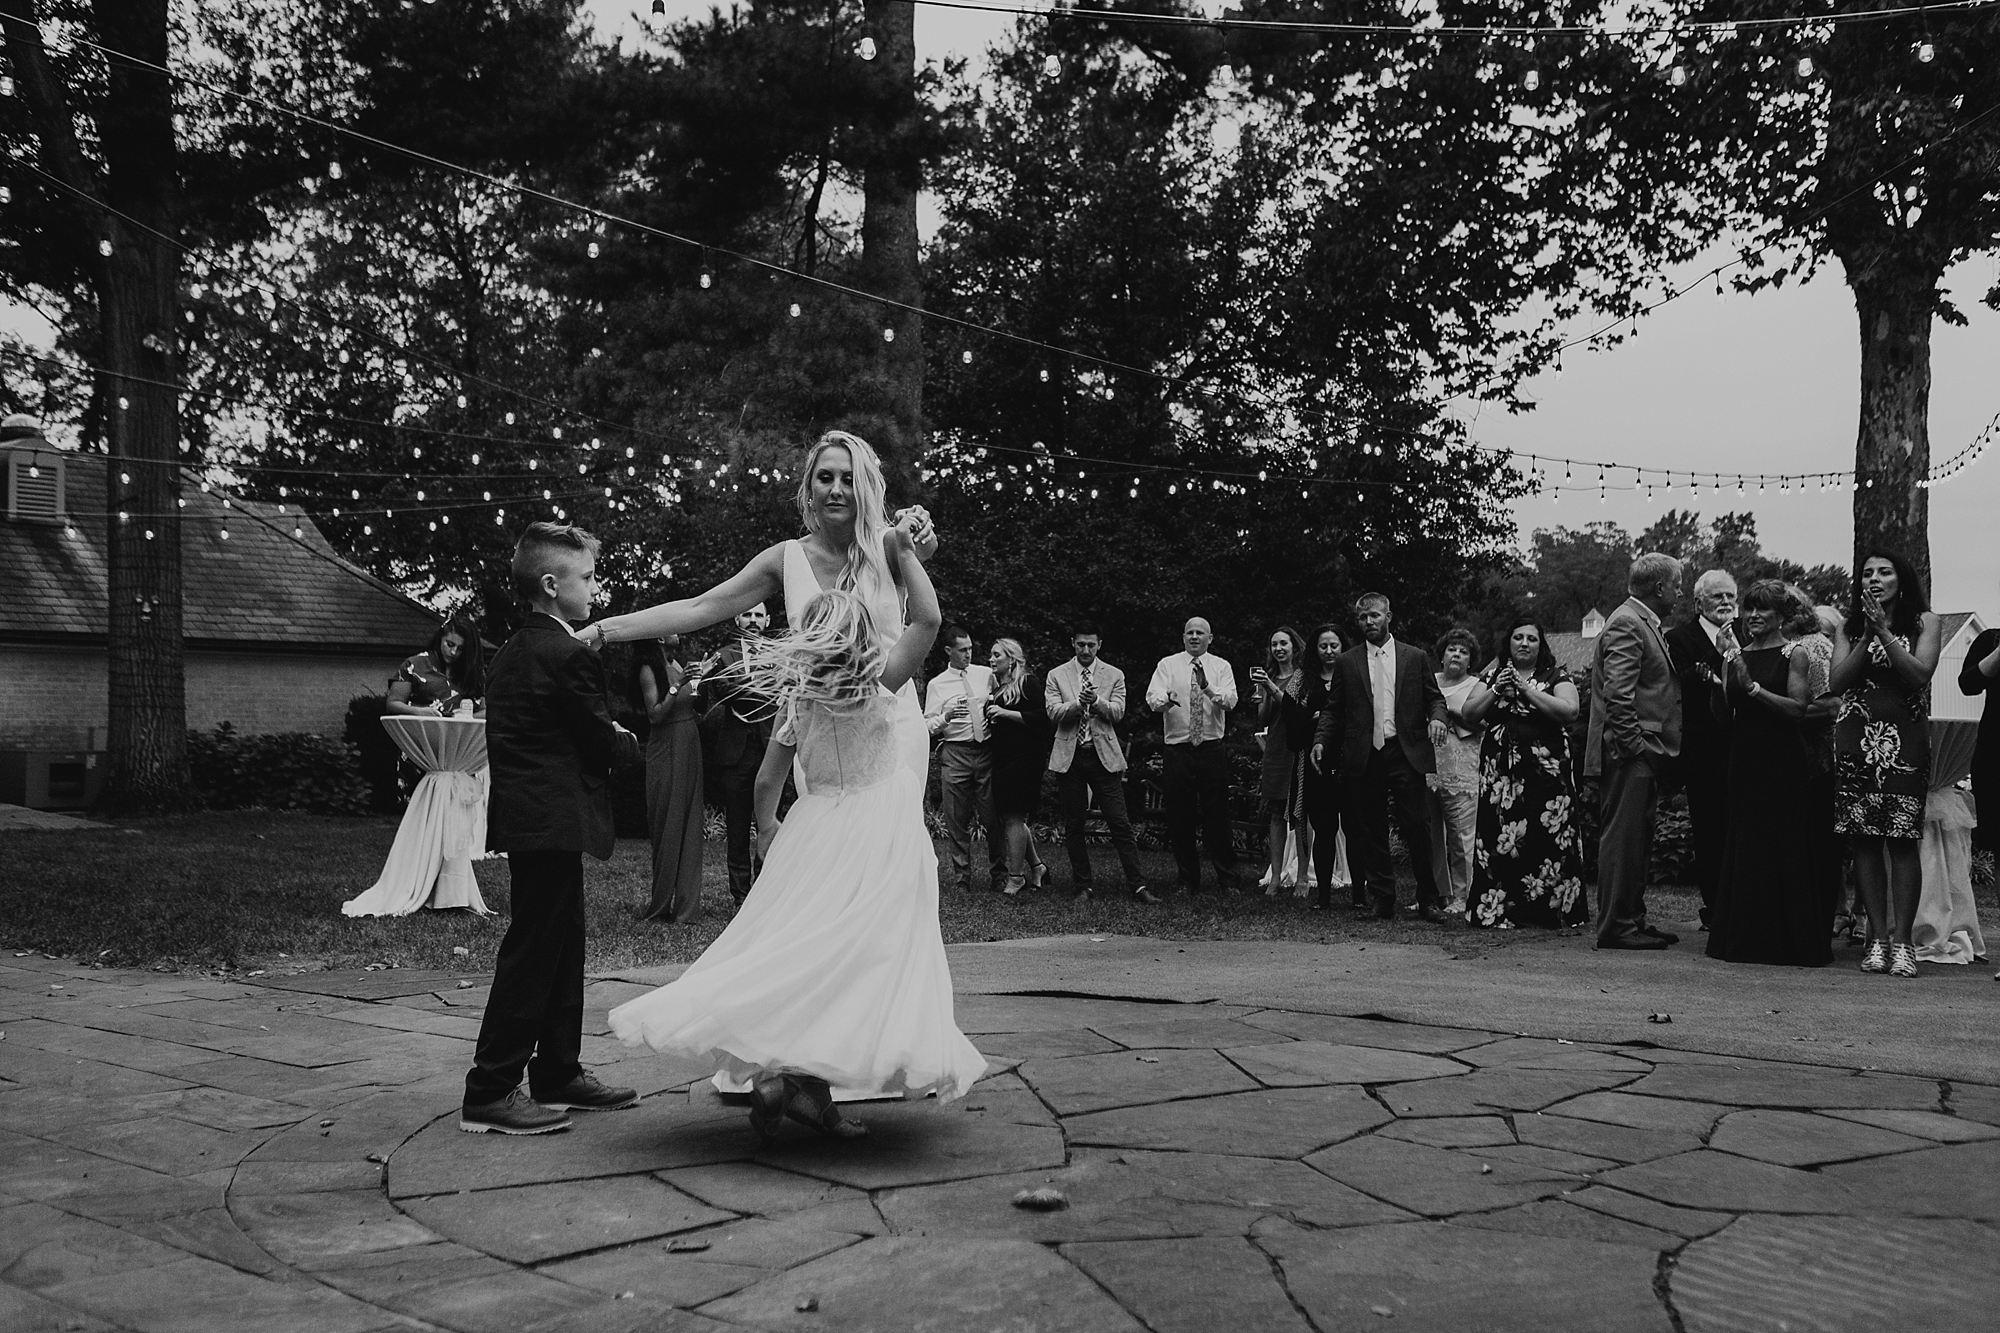 Druemore_Joe_Mac_Creative_Philadelphila_Wedding_Photography_drumore_estate_pequea_Best_lancaster_wedding_venues_0079.jpg